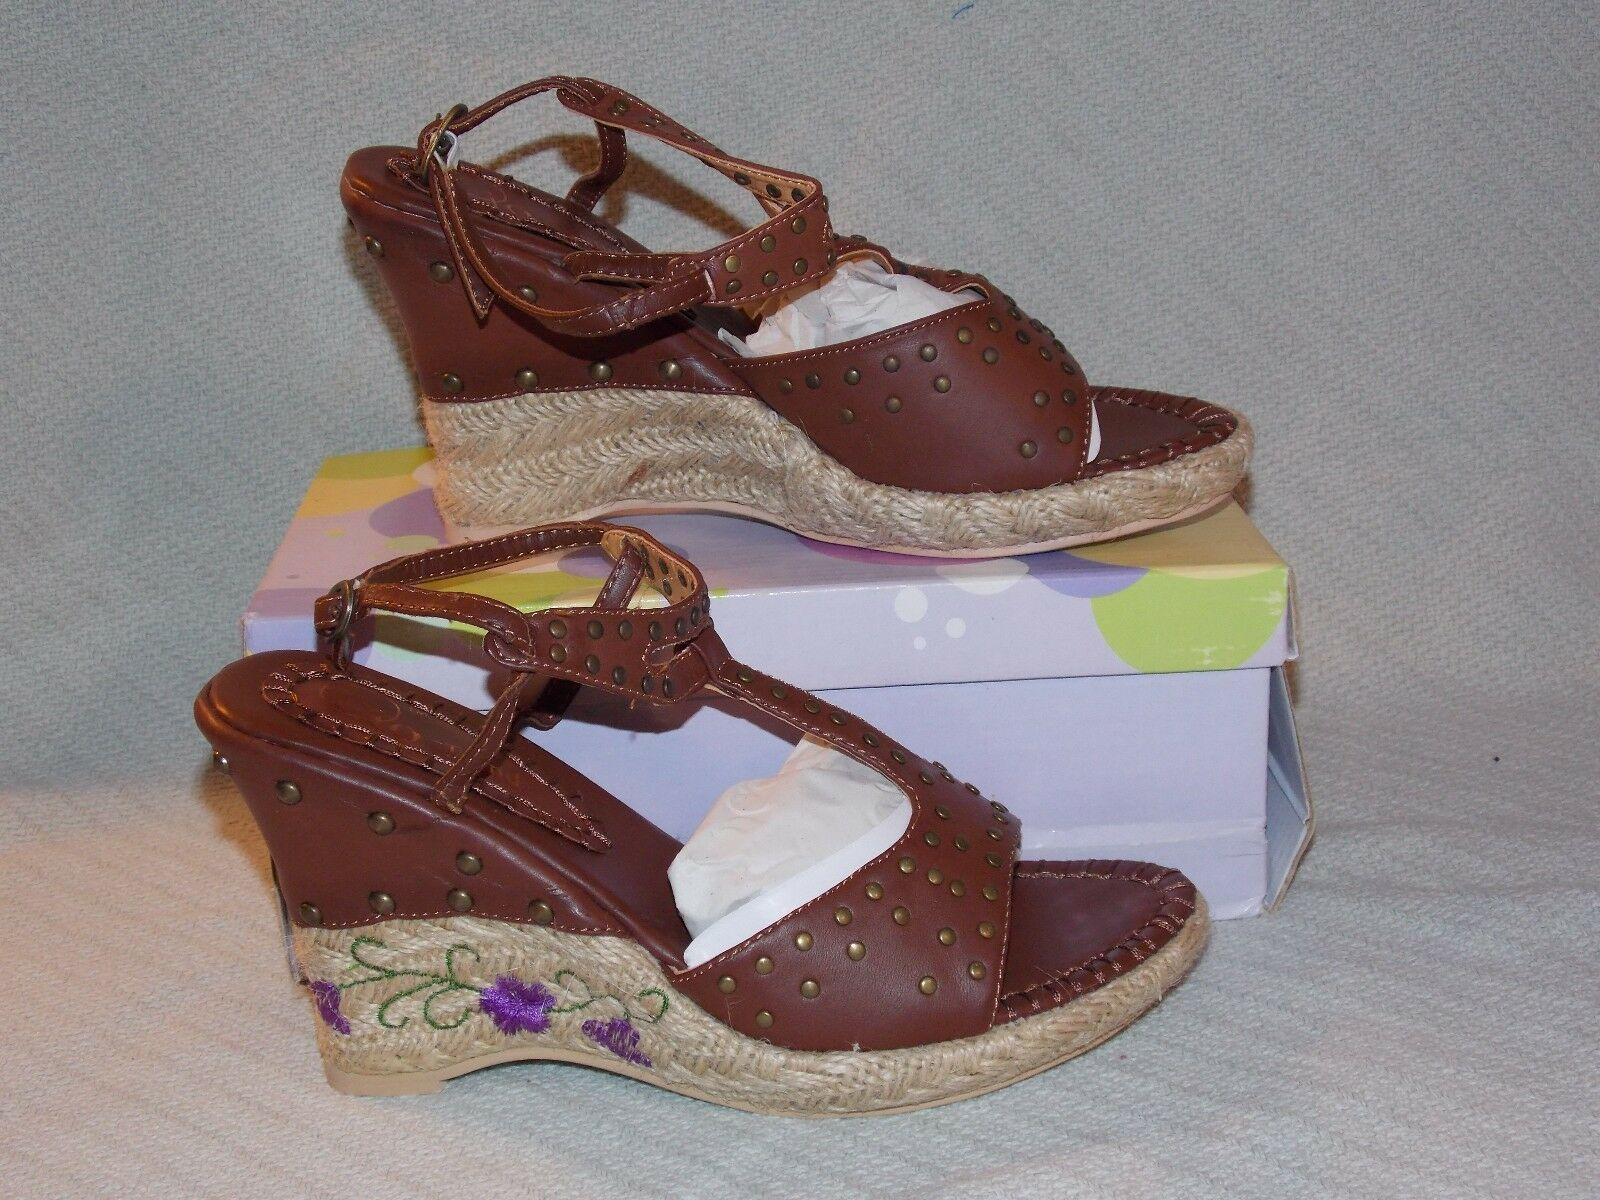 New in box Ladies Dark Brown 355-28 IO Sandal TREND Flower Design Wedge Sandal IO w/Strap 351ccb